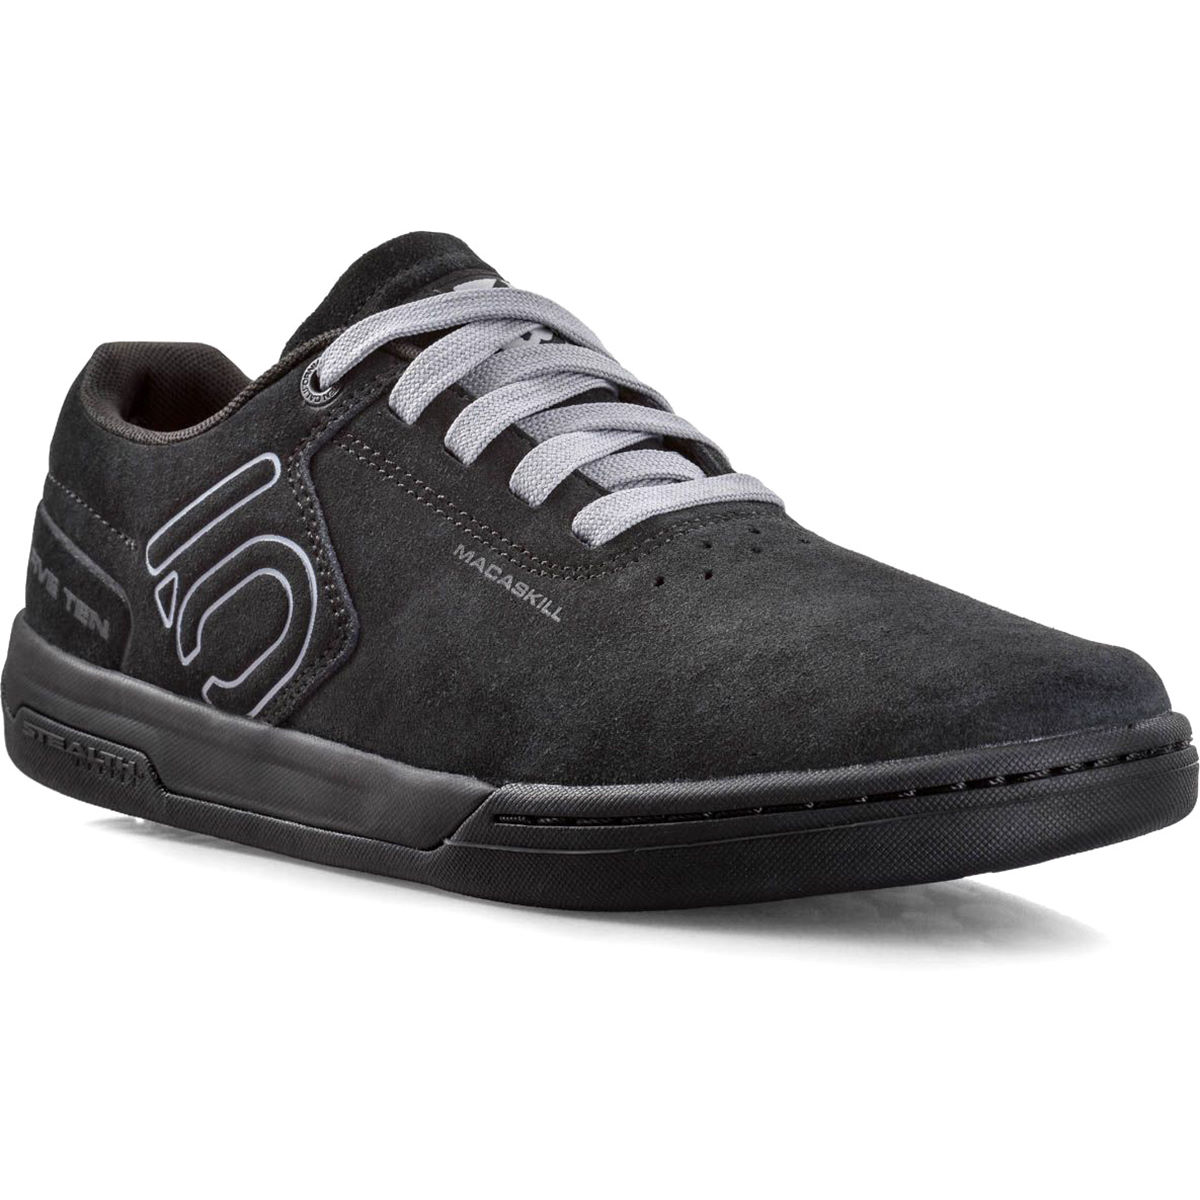 Chaussures VTT Five Ten Danny MacAskill - EU 38 Carbon Black